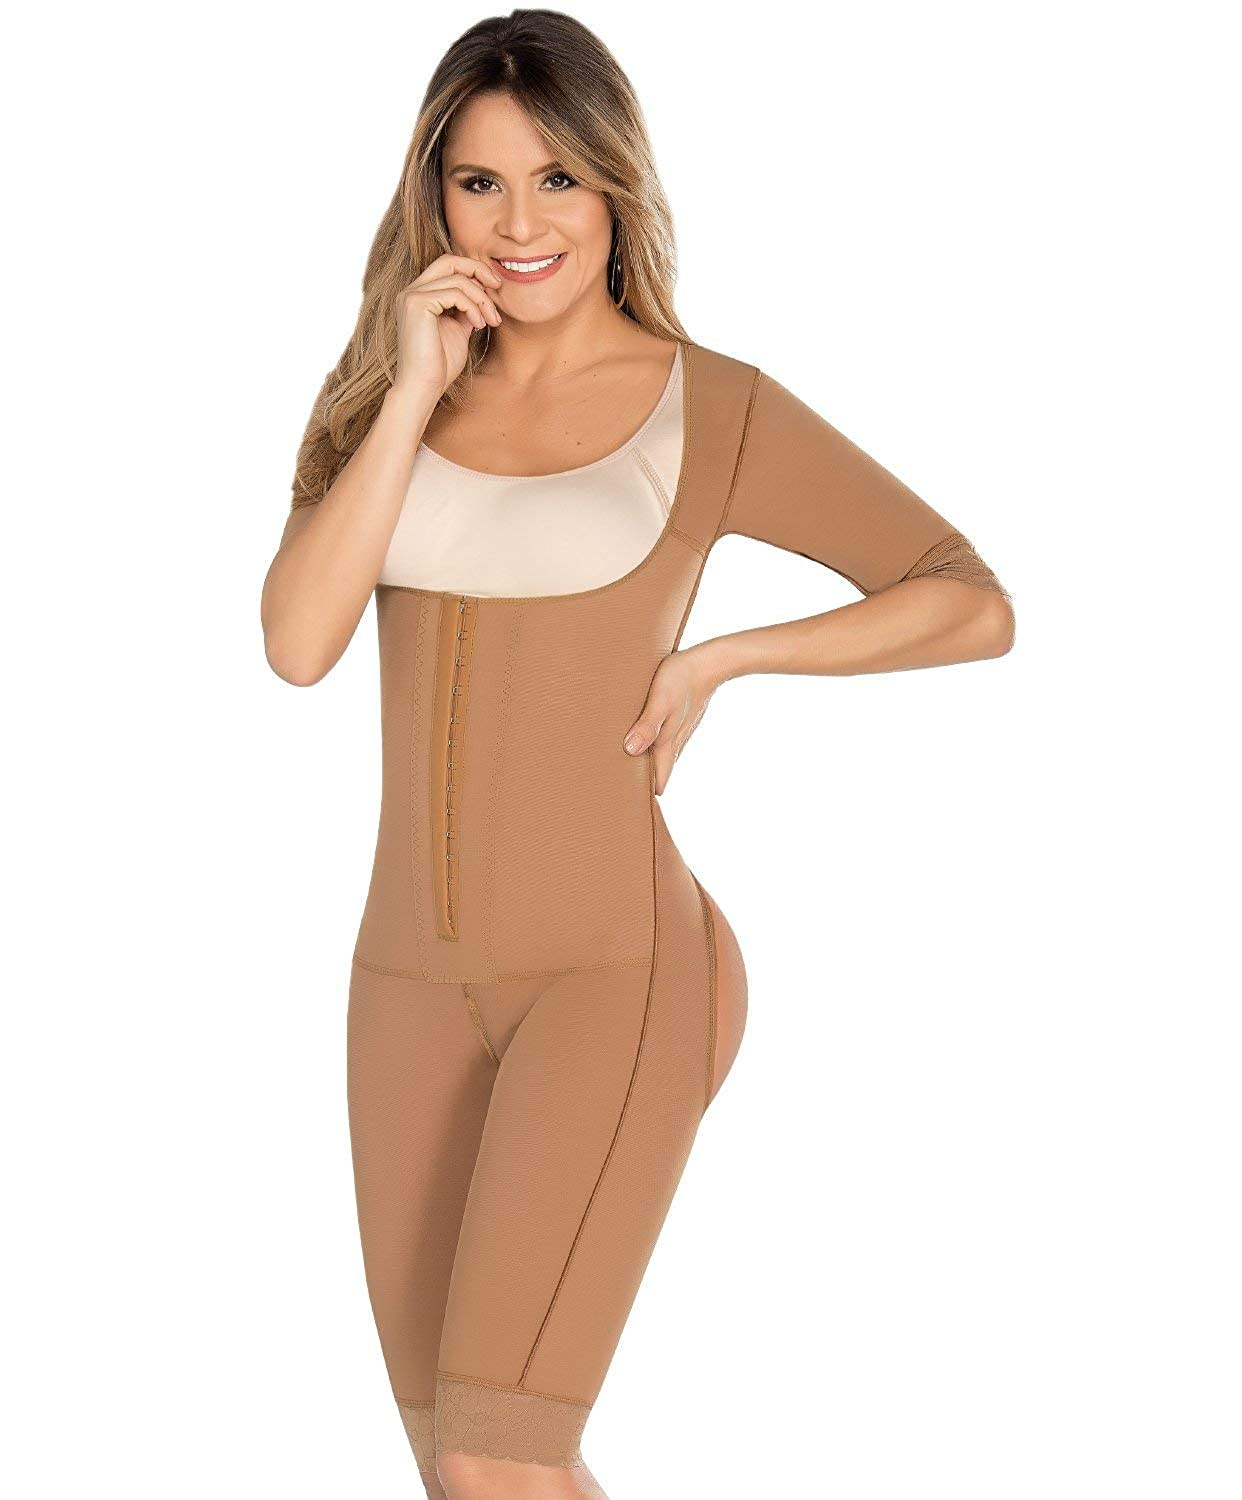 cea05411ac577 Equilibrium - Post Op Compression Garment - Buttocks Enhancer - One Piece  with Sleeves - Open Bust - C9016 at Amazon Women s Clothing store